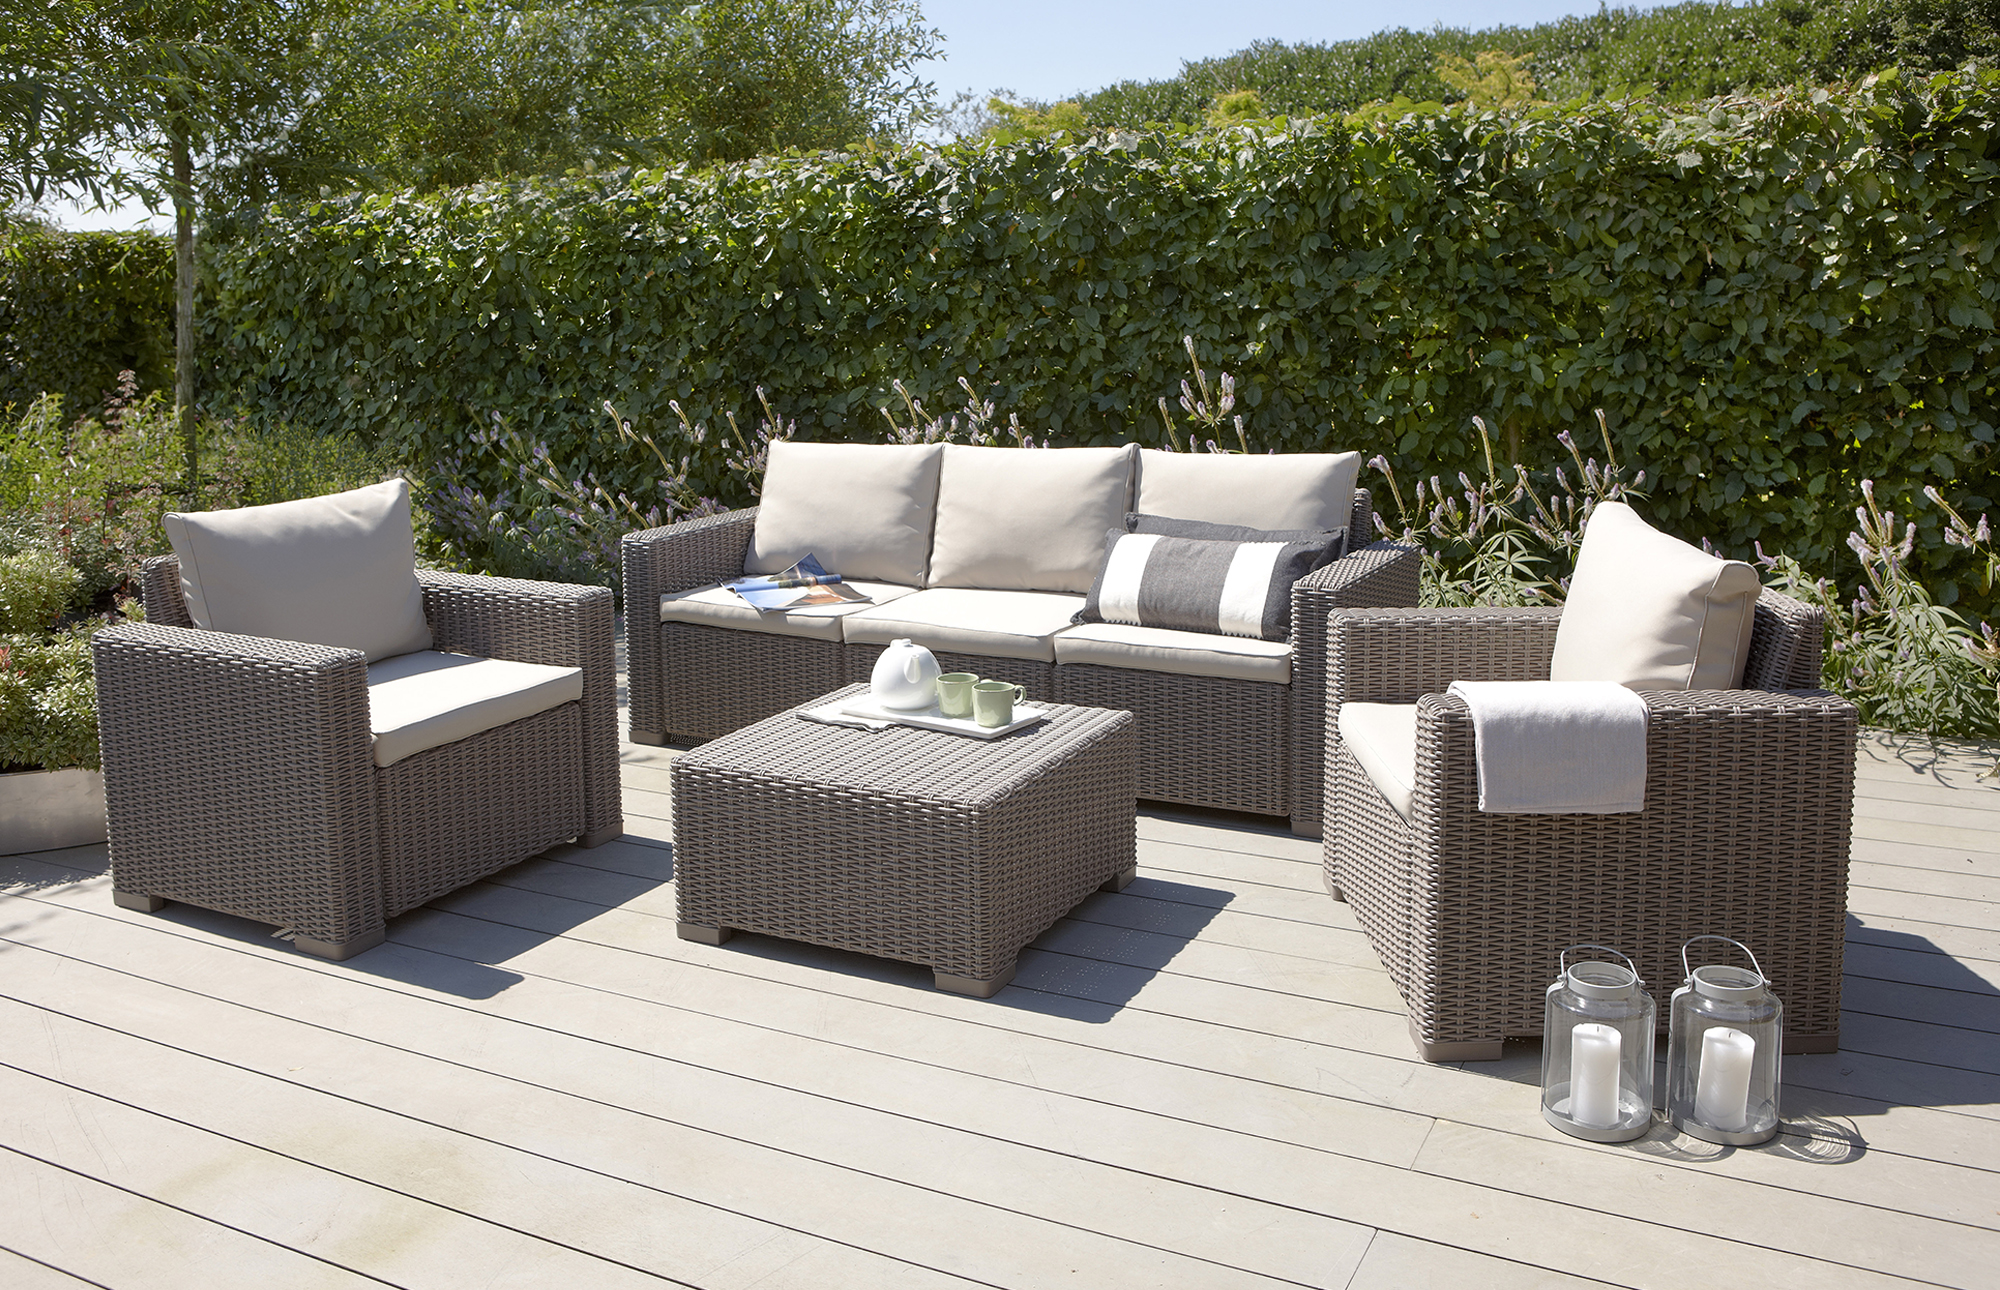 garden-furniture-rattan-sets-breathtaking-rattan-garden-furniture -bistro-sets-breathtaking-outdoor-patio-furniture-covers - Rattan Garden  Furniture Sets